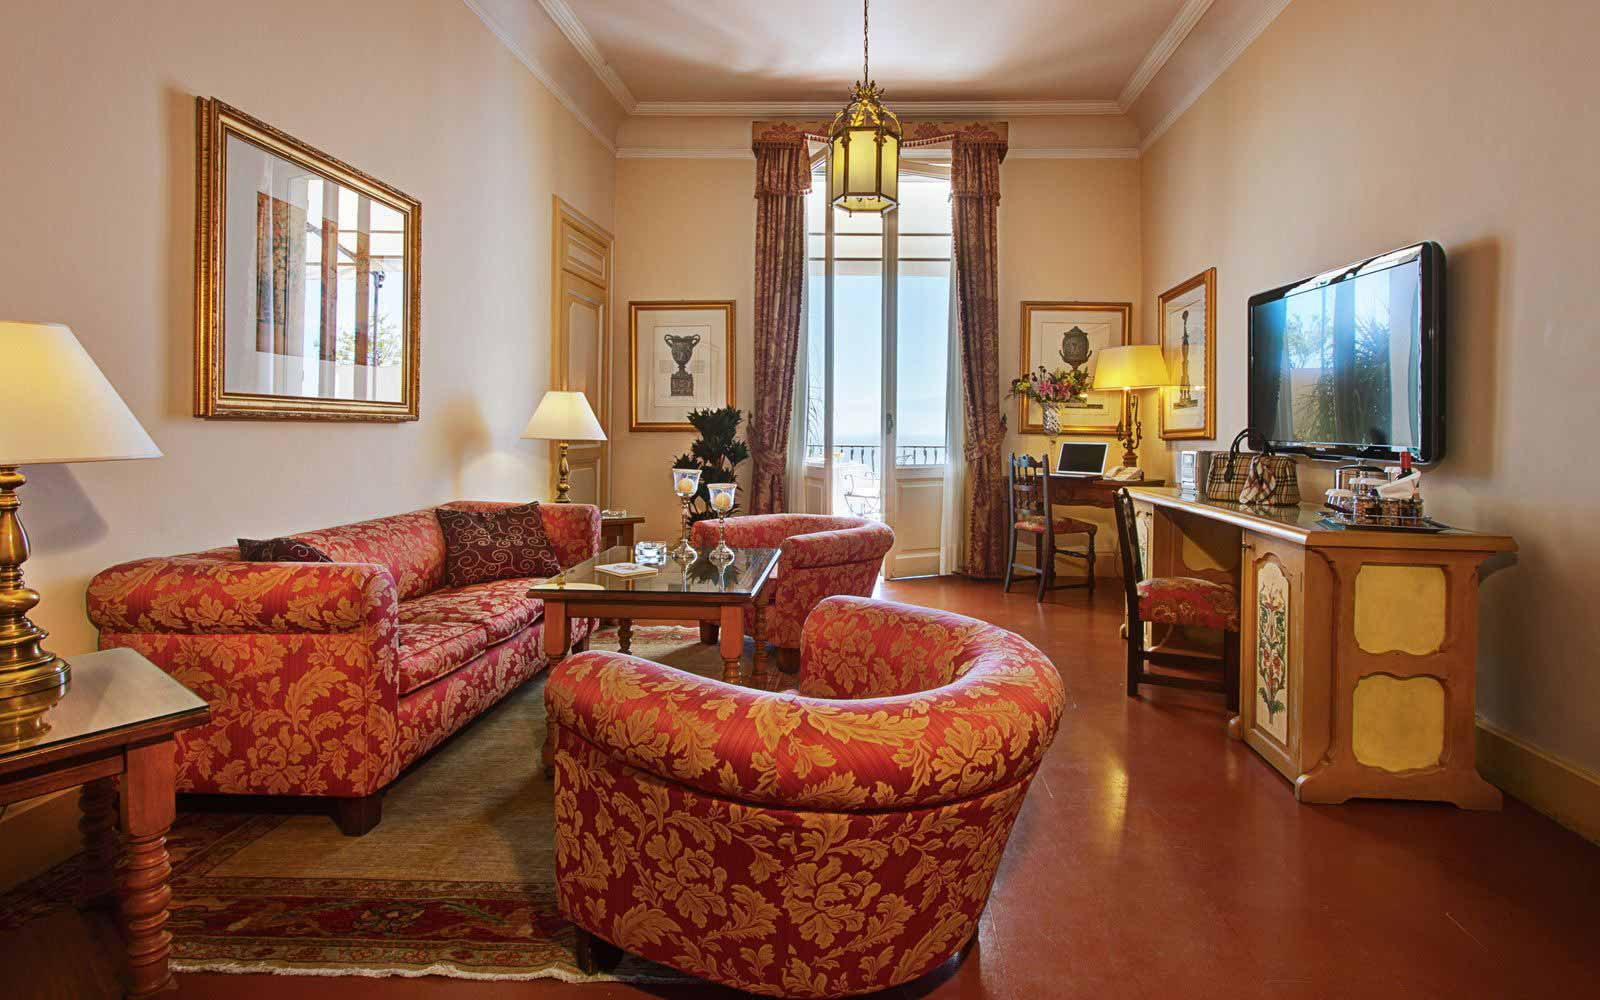 Grand suite lounge area at San Domenico Palace Hotel